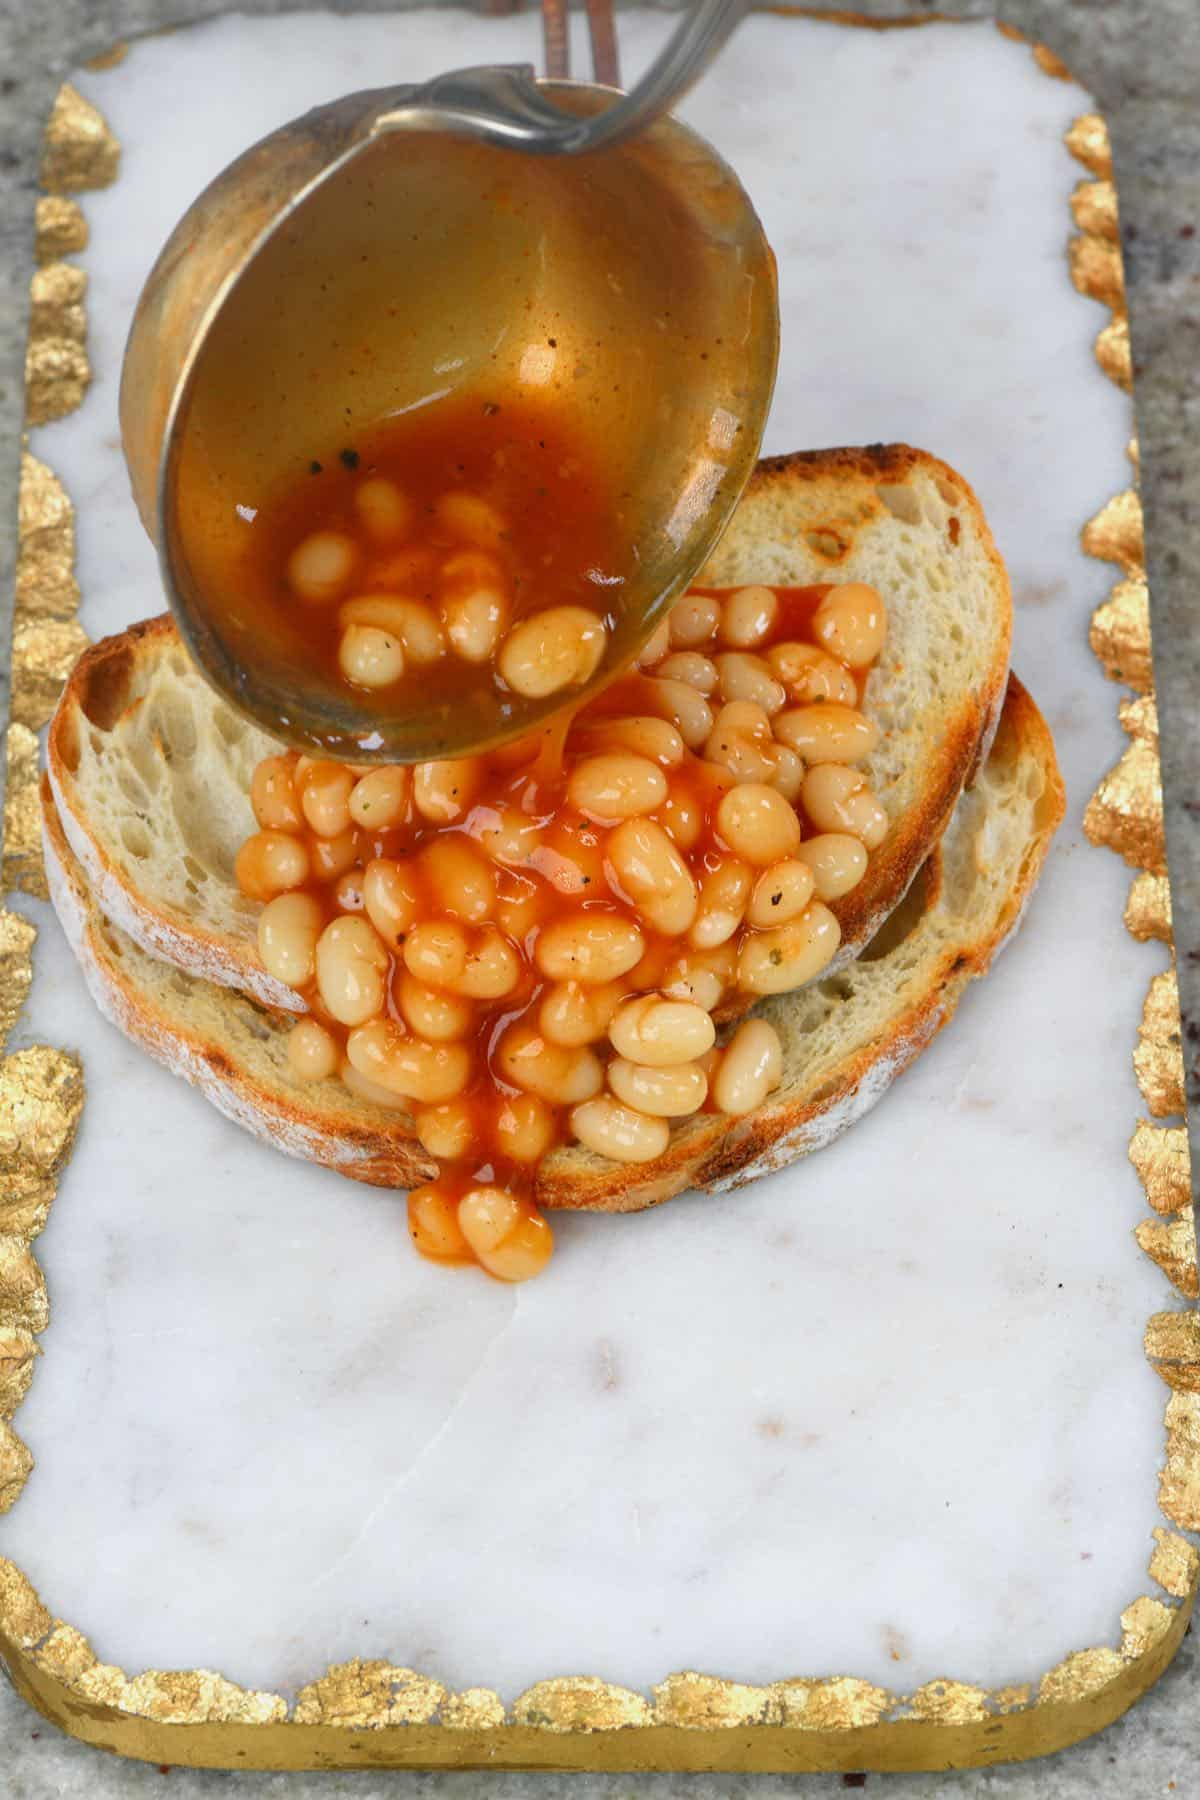 Pouring baked beans over toast